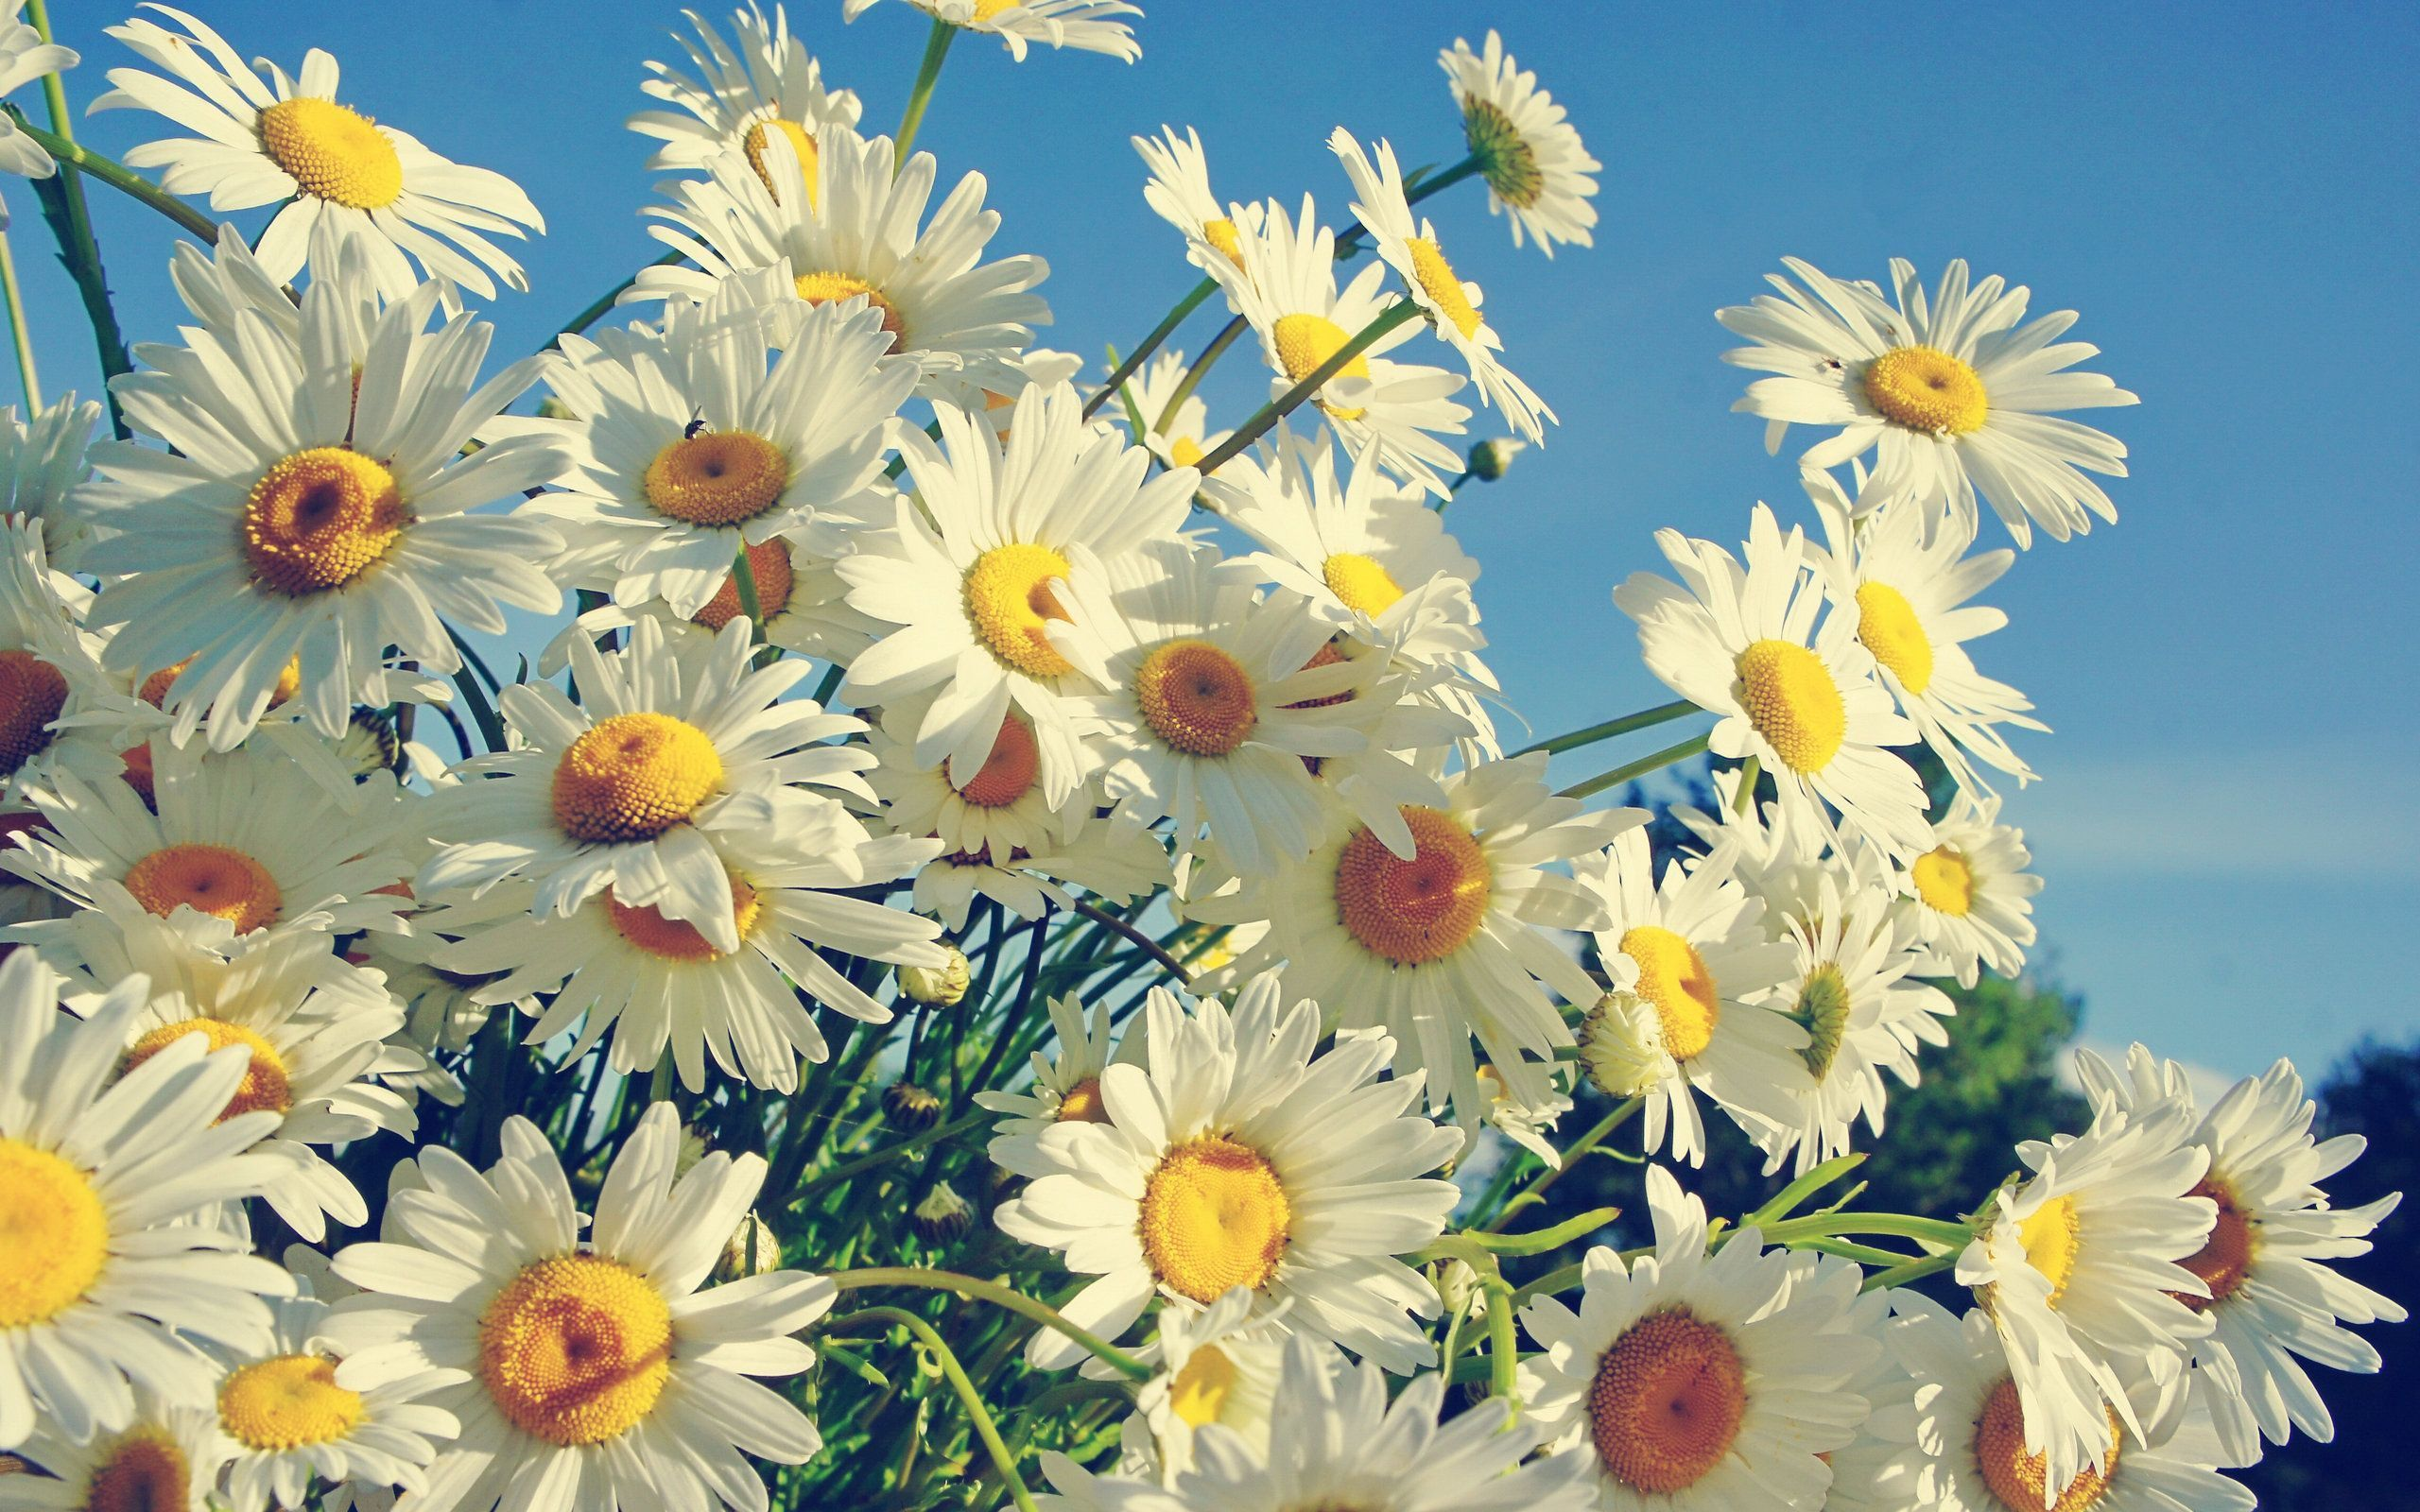 daisy images free